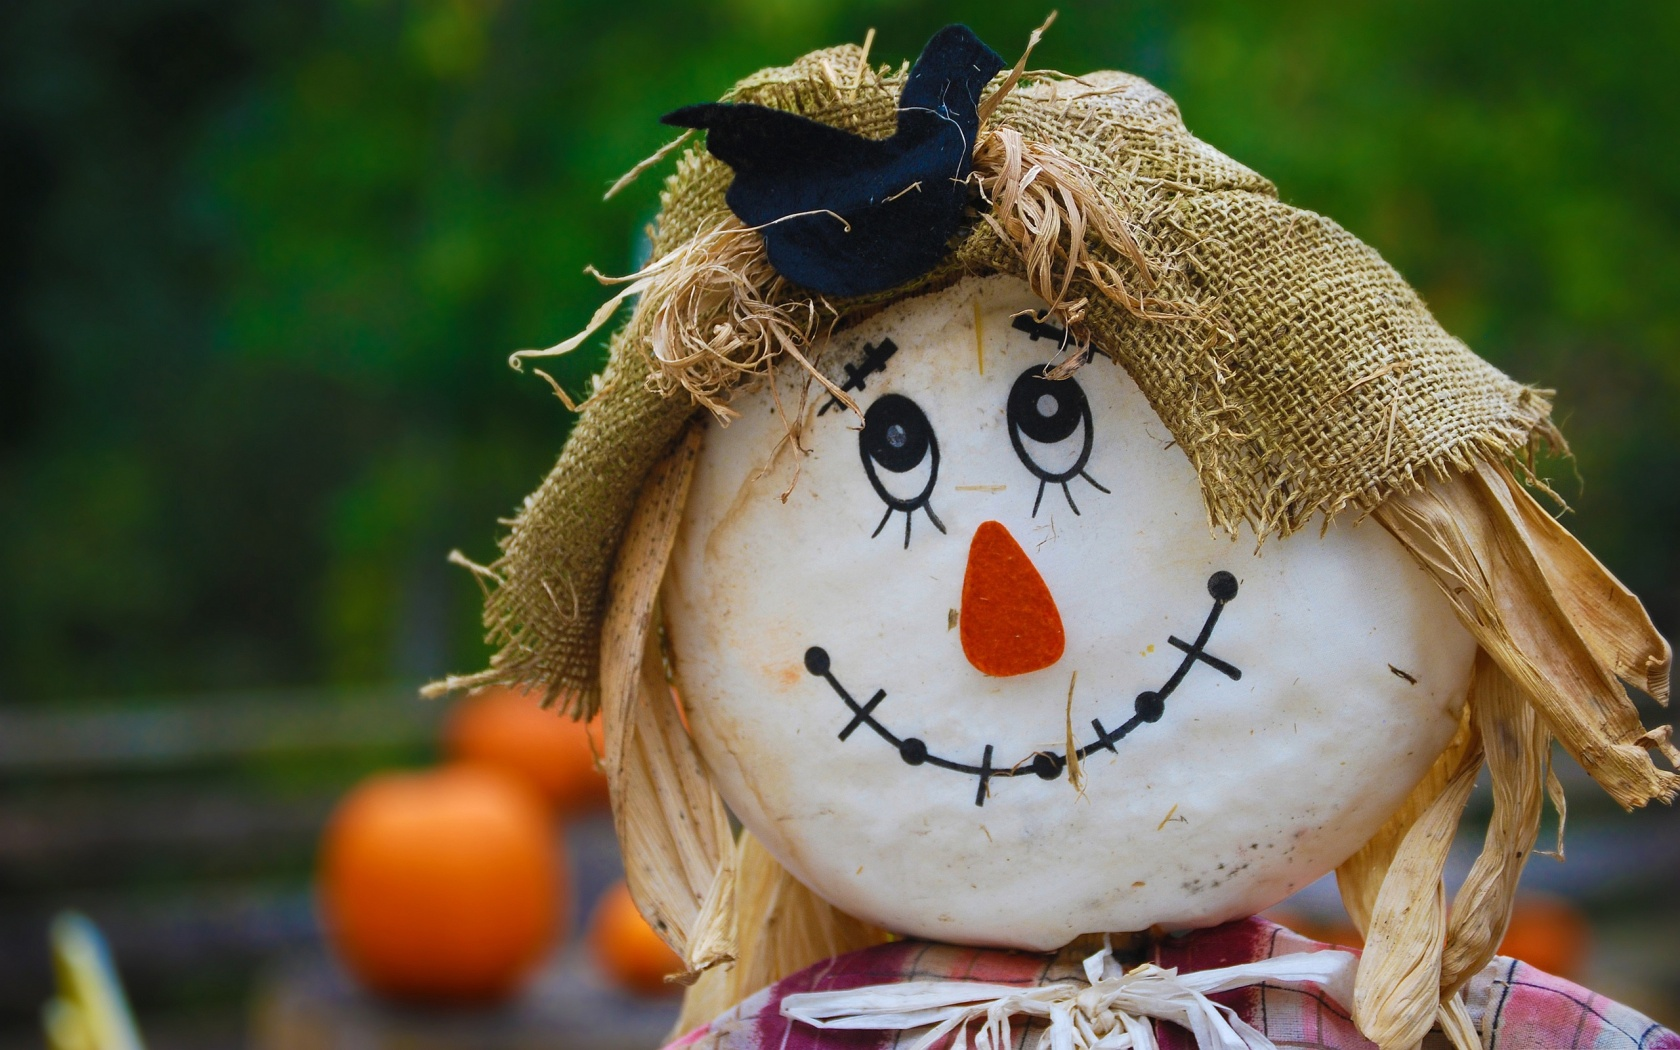 Description: The Wallpaper above is Smiling Scarecrow Wallpaper in Resolution 1680x1050. Choose your Resolution and Download Smiling Scarecrow Wallpaper